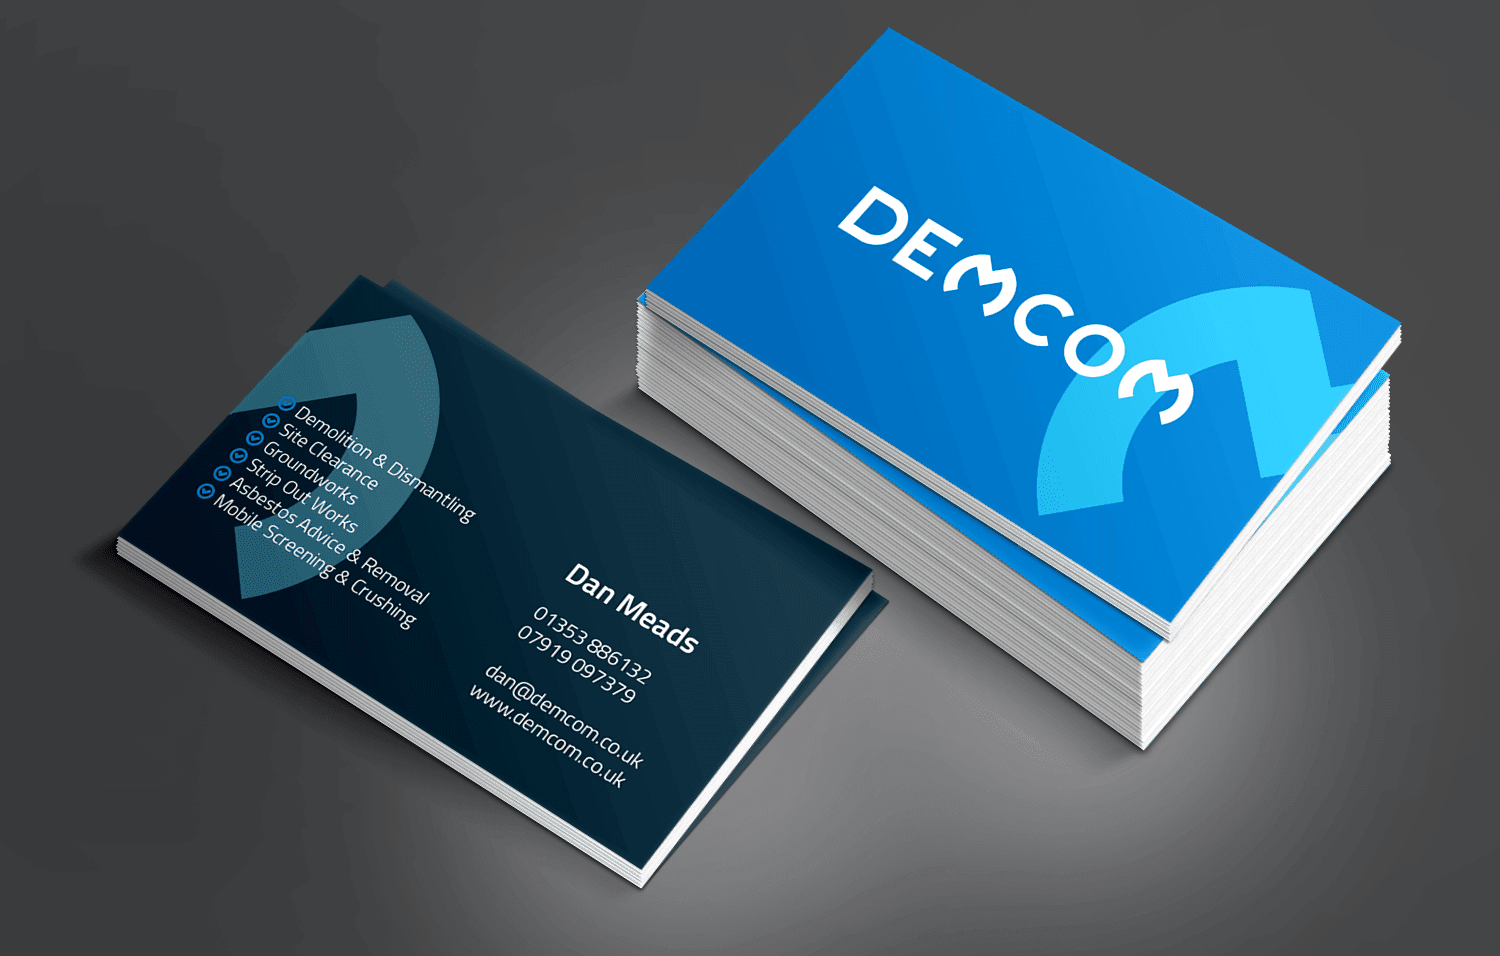 Demcom business card